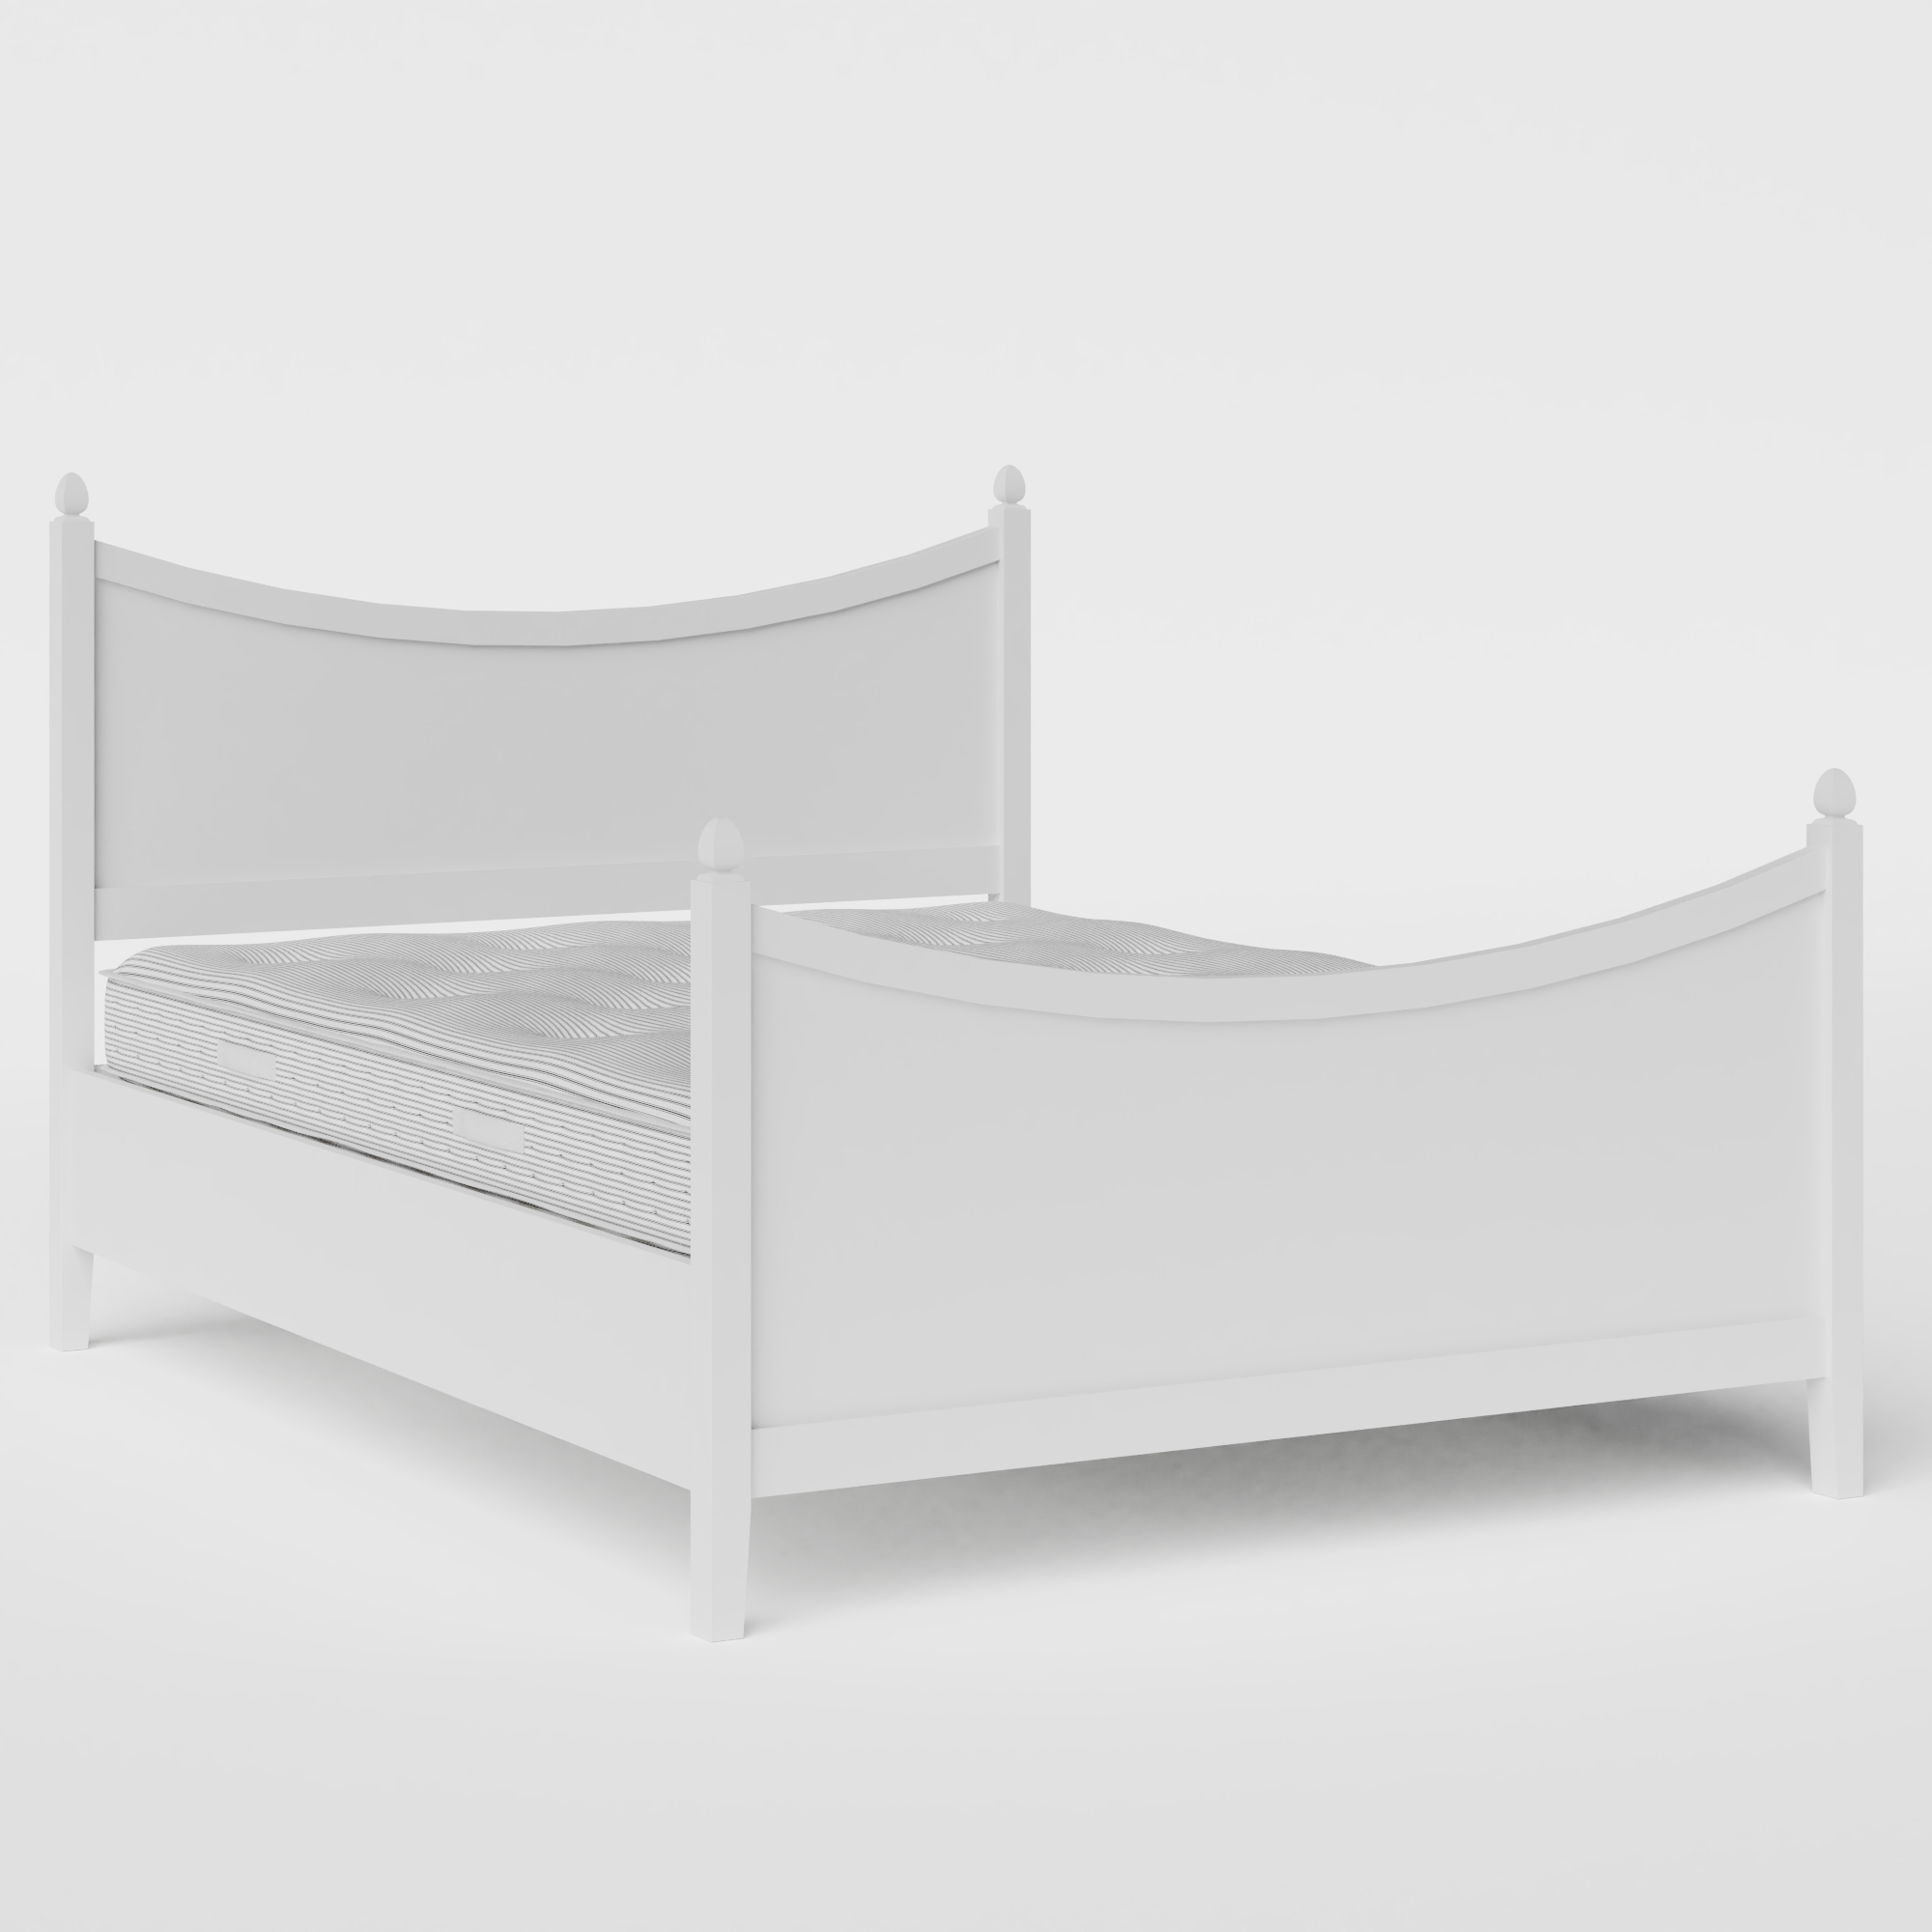 Blake Painted painted wood bed in white with Juno mattress